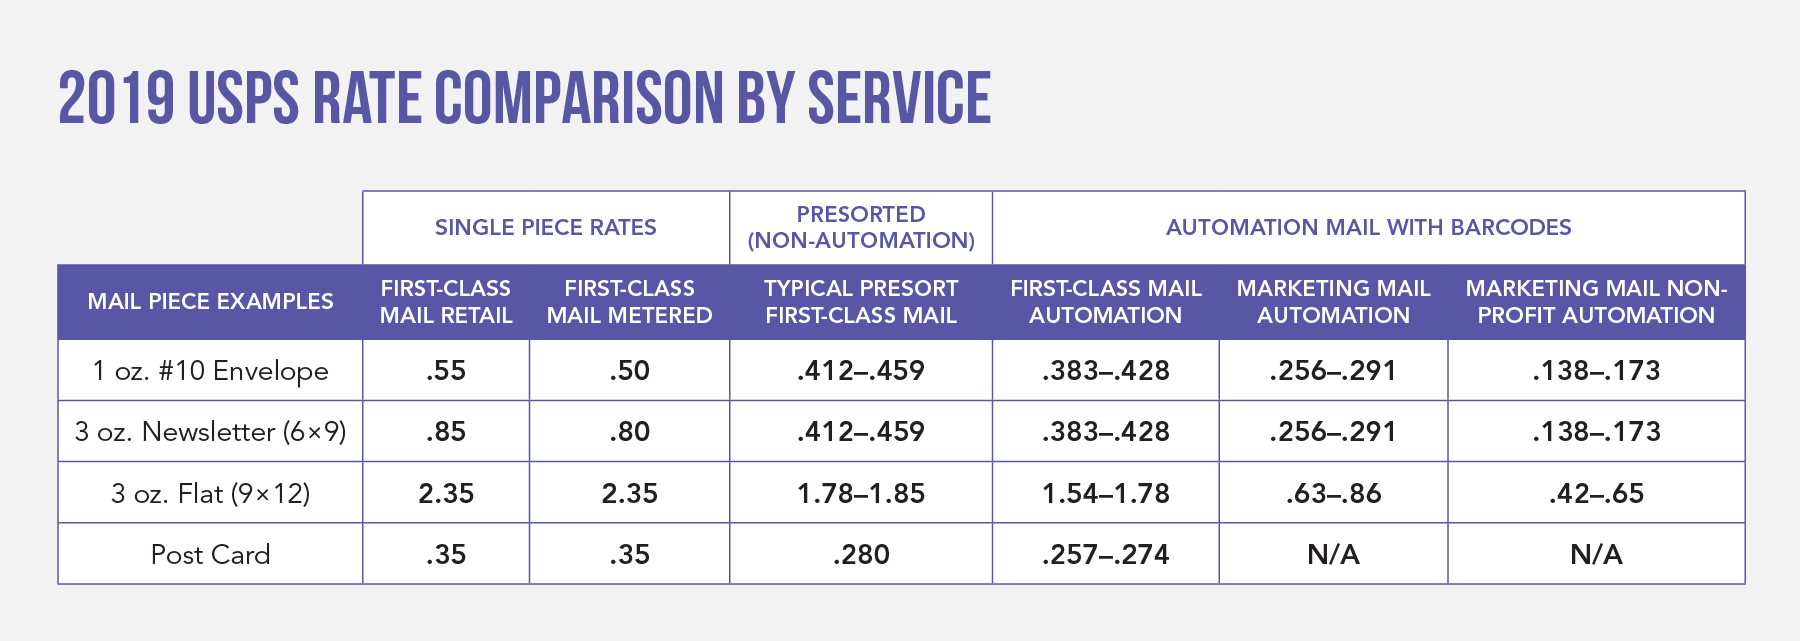 2019 USPS Rate Comparison by Service